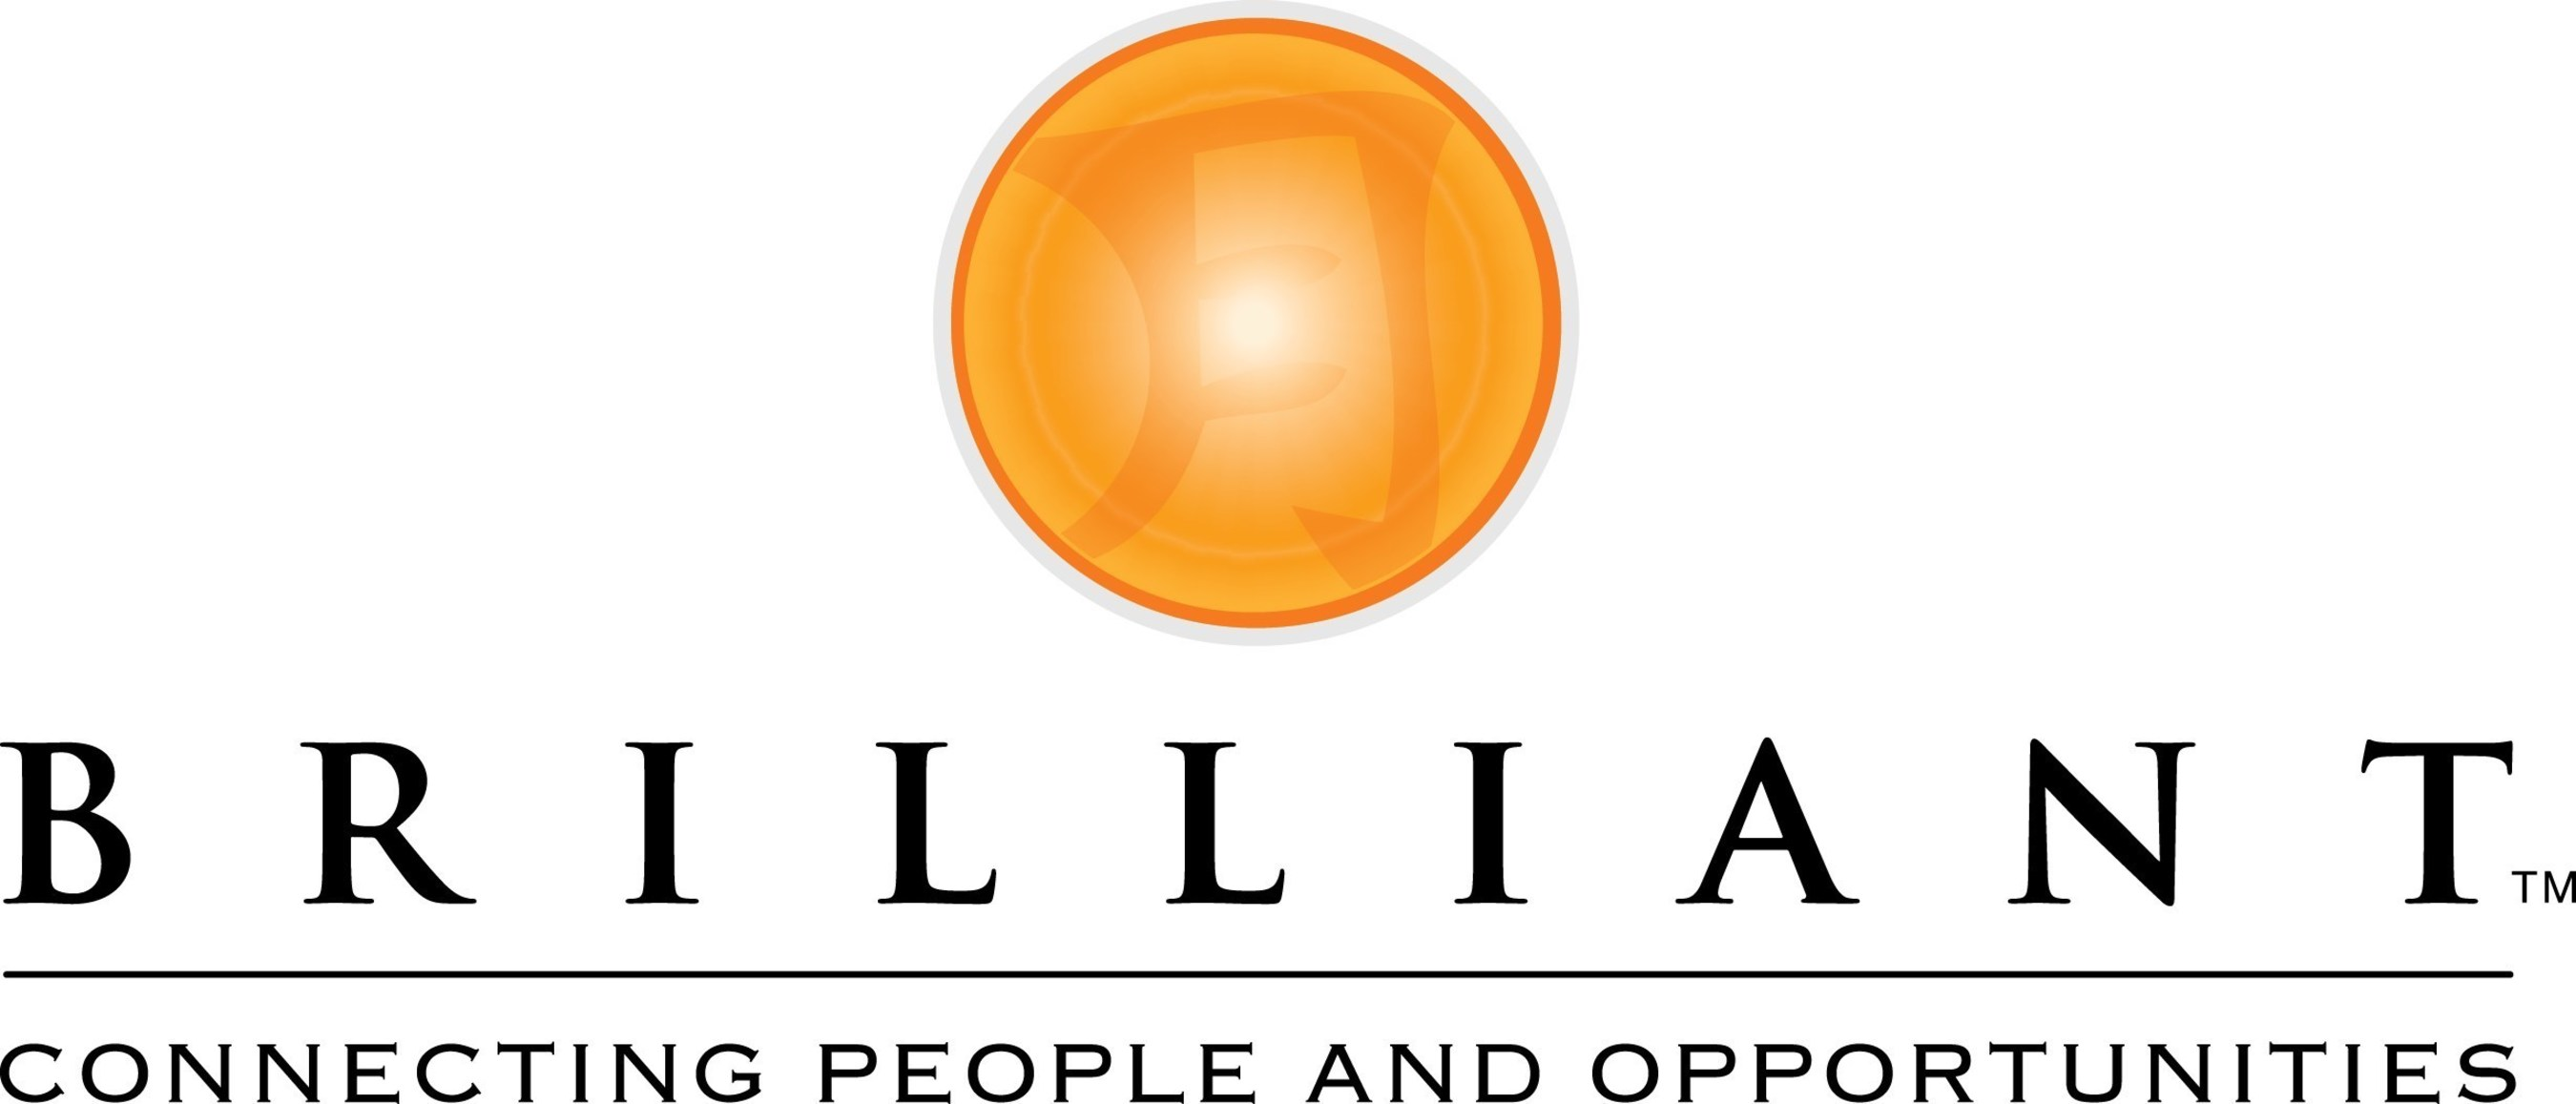 Brilliant™ is a search, staffing & management resources firm specializing in the accounting, finance & IT professions throughout the greater Chicago & south Florida markets. To learn more, visit www.brilliantfs.com, call 312.582.1800 or search @BrilliantFS on social media